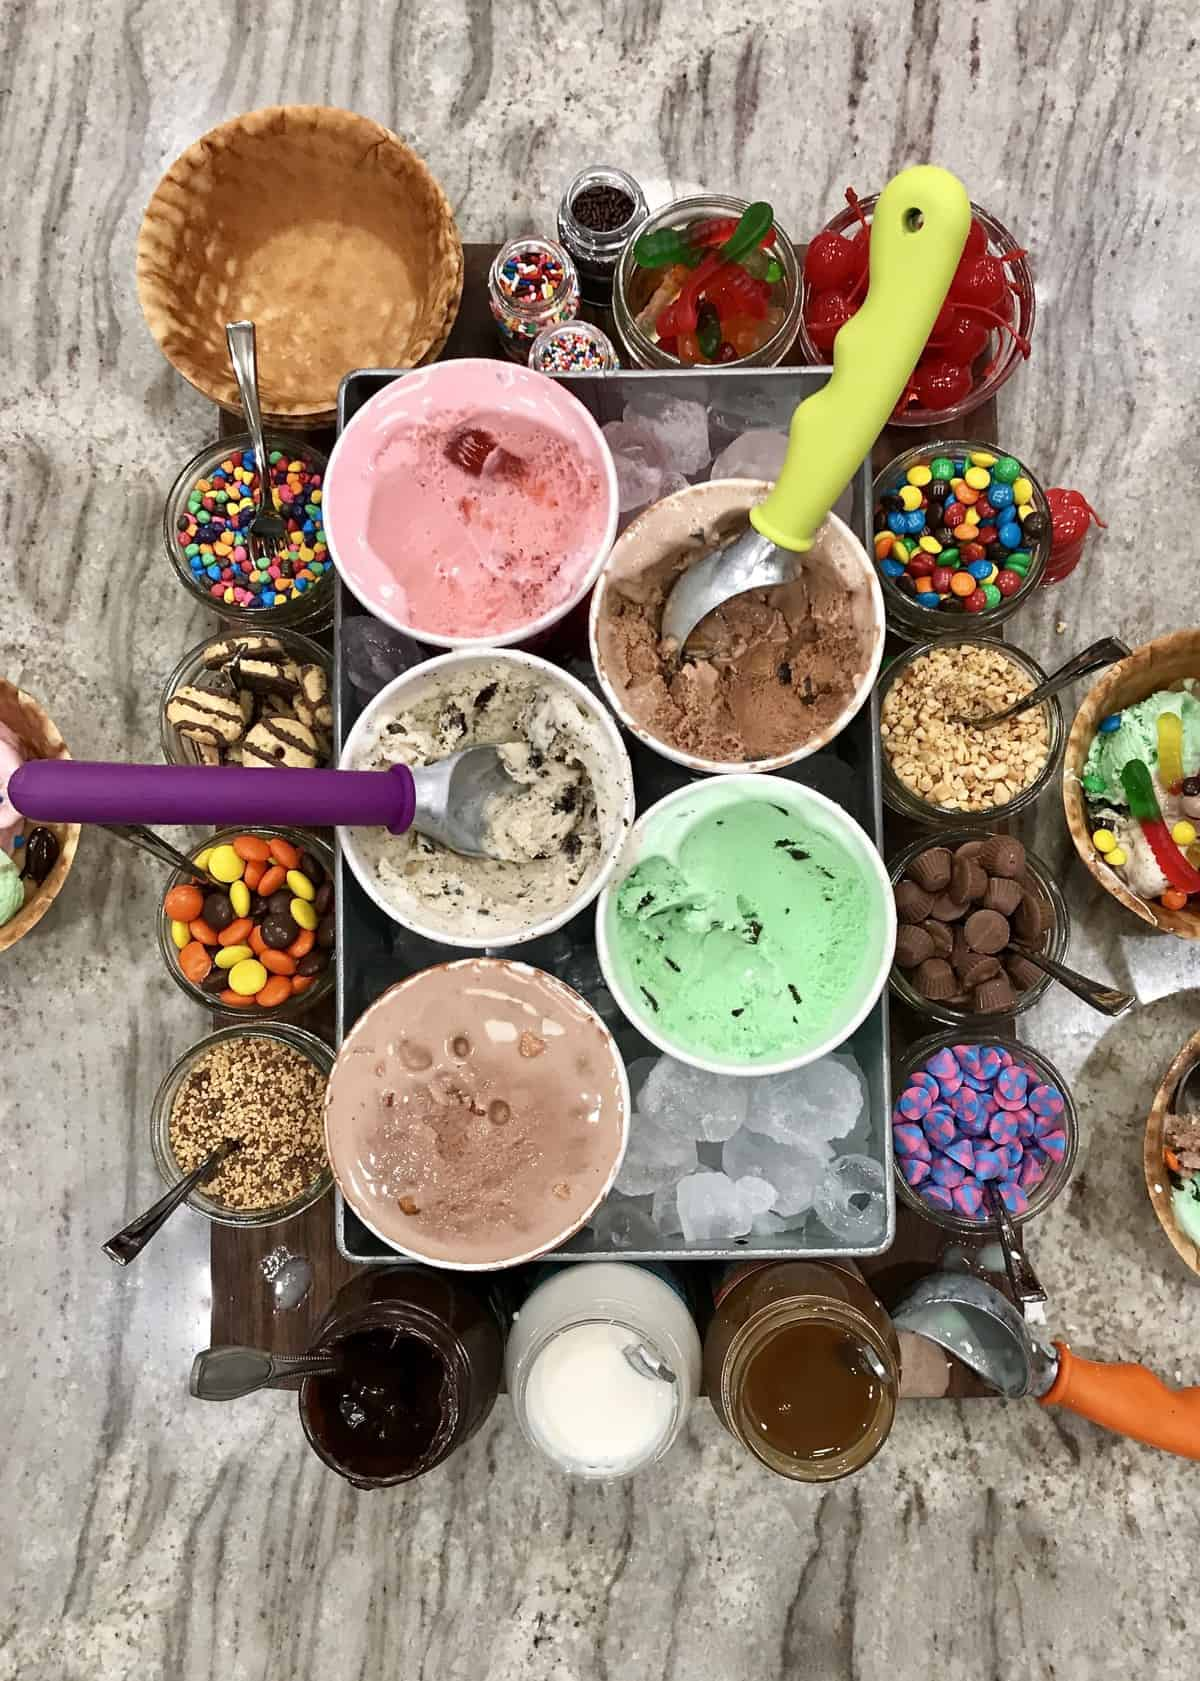 Build-Your-Own Ice Cream Sundae Board by The BakerMama